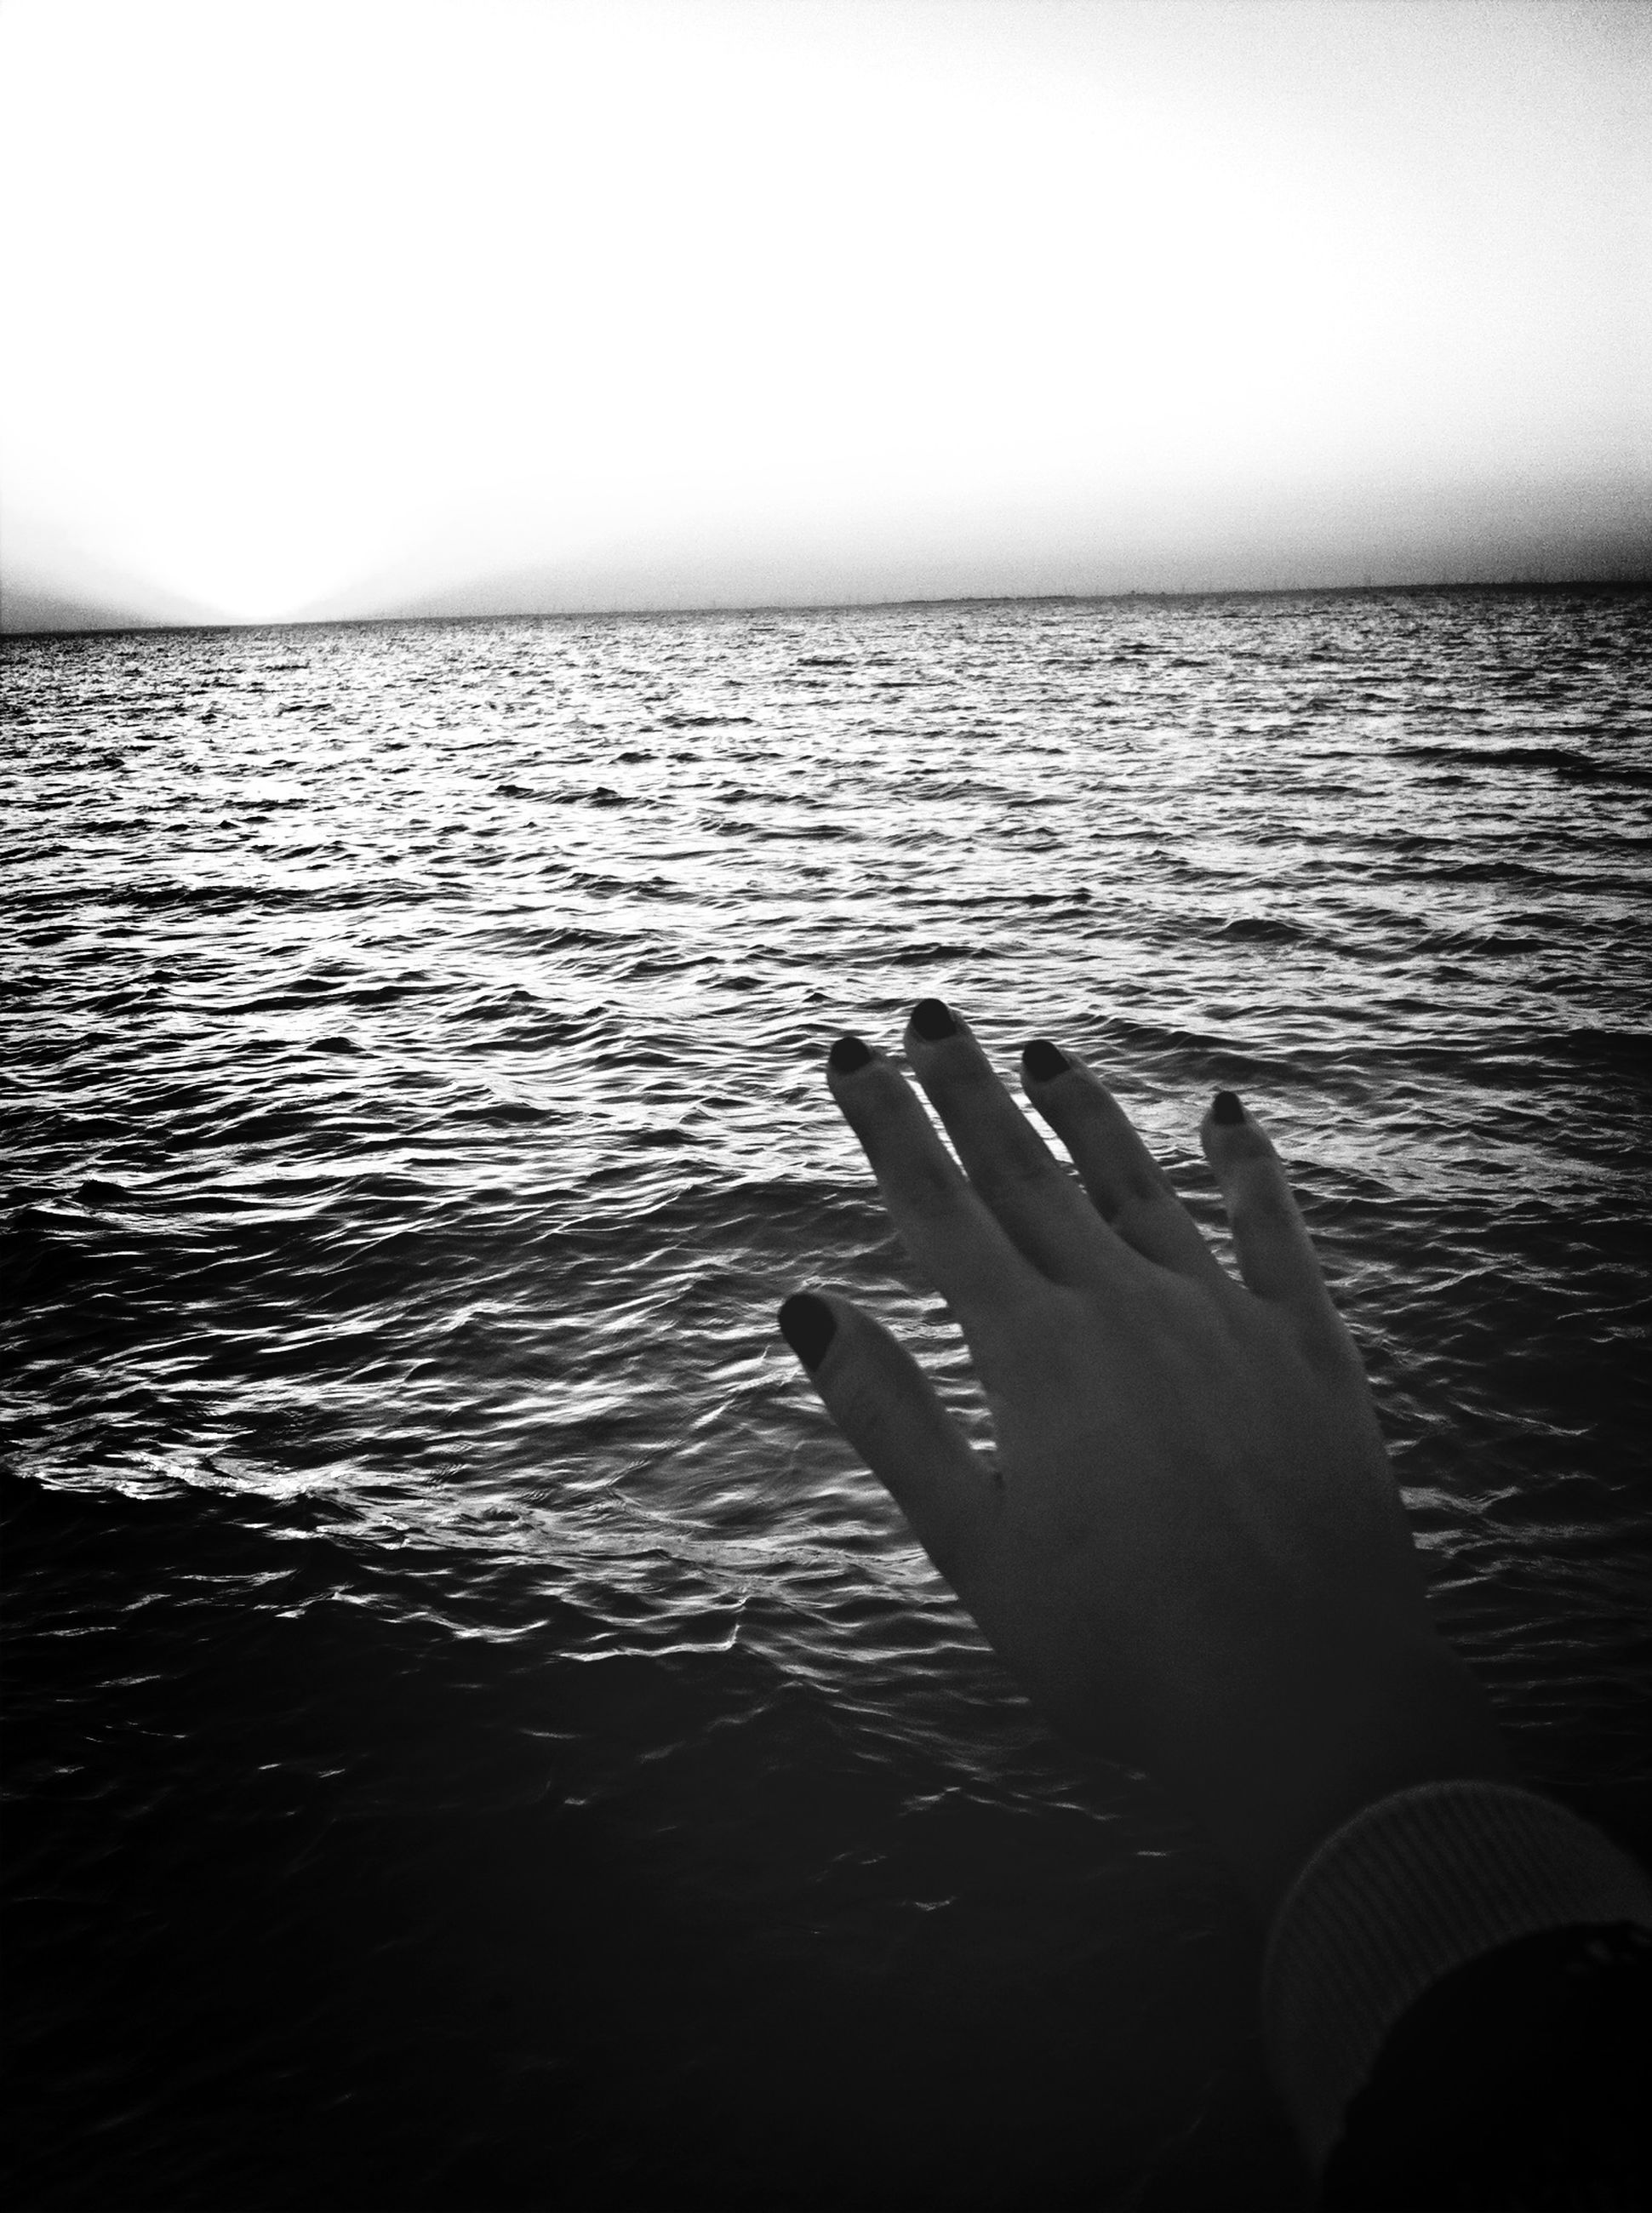 water, sea, part of, copy space, clear sky, tranquility, horizon over water, rippled, tranquil scene, cropped, personal perspective, scenics, nature, beauty in nature, person, unrecognizable person